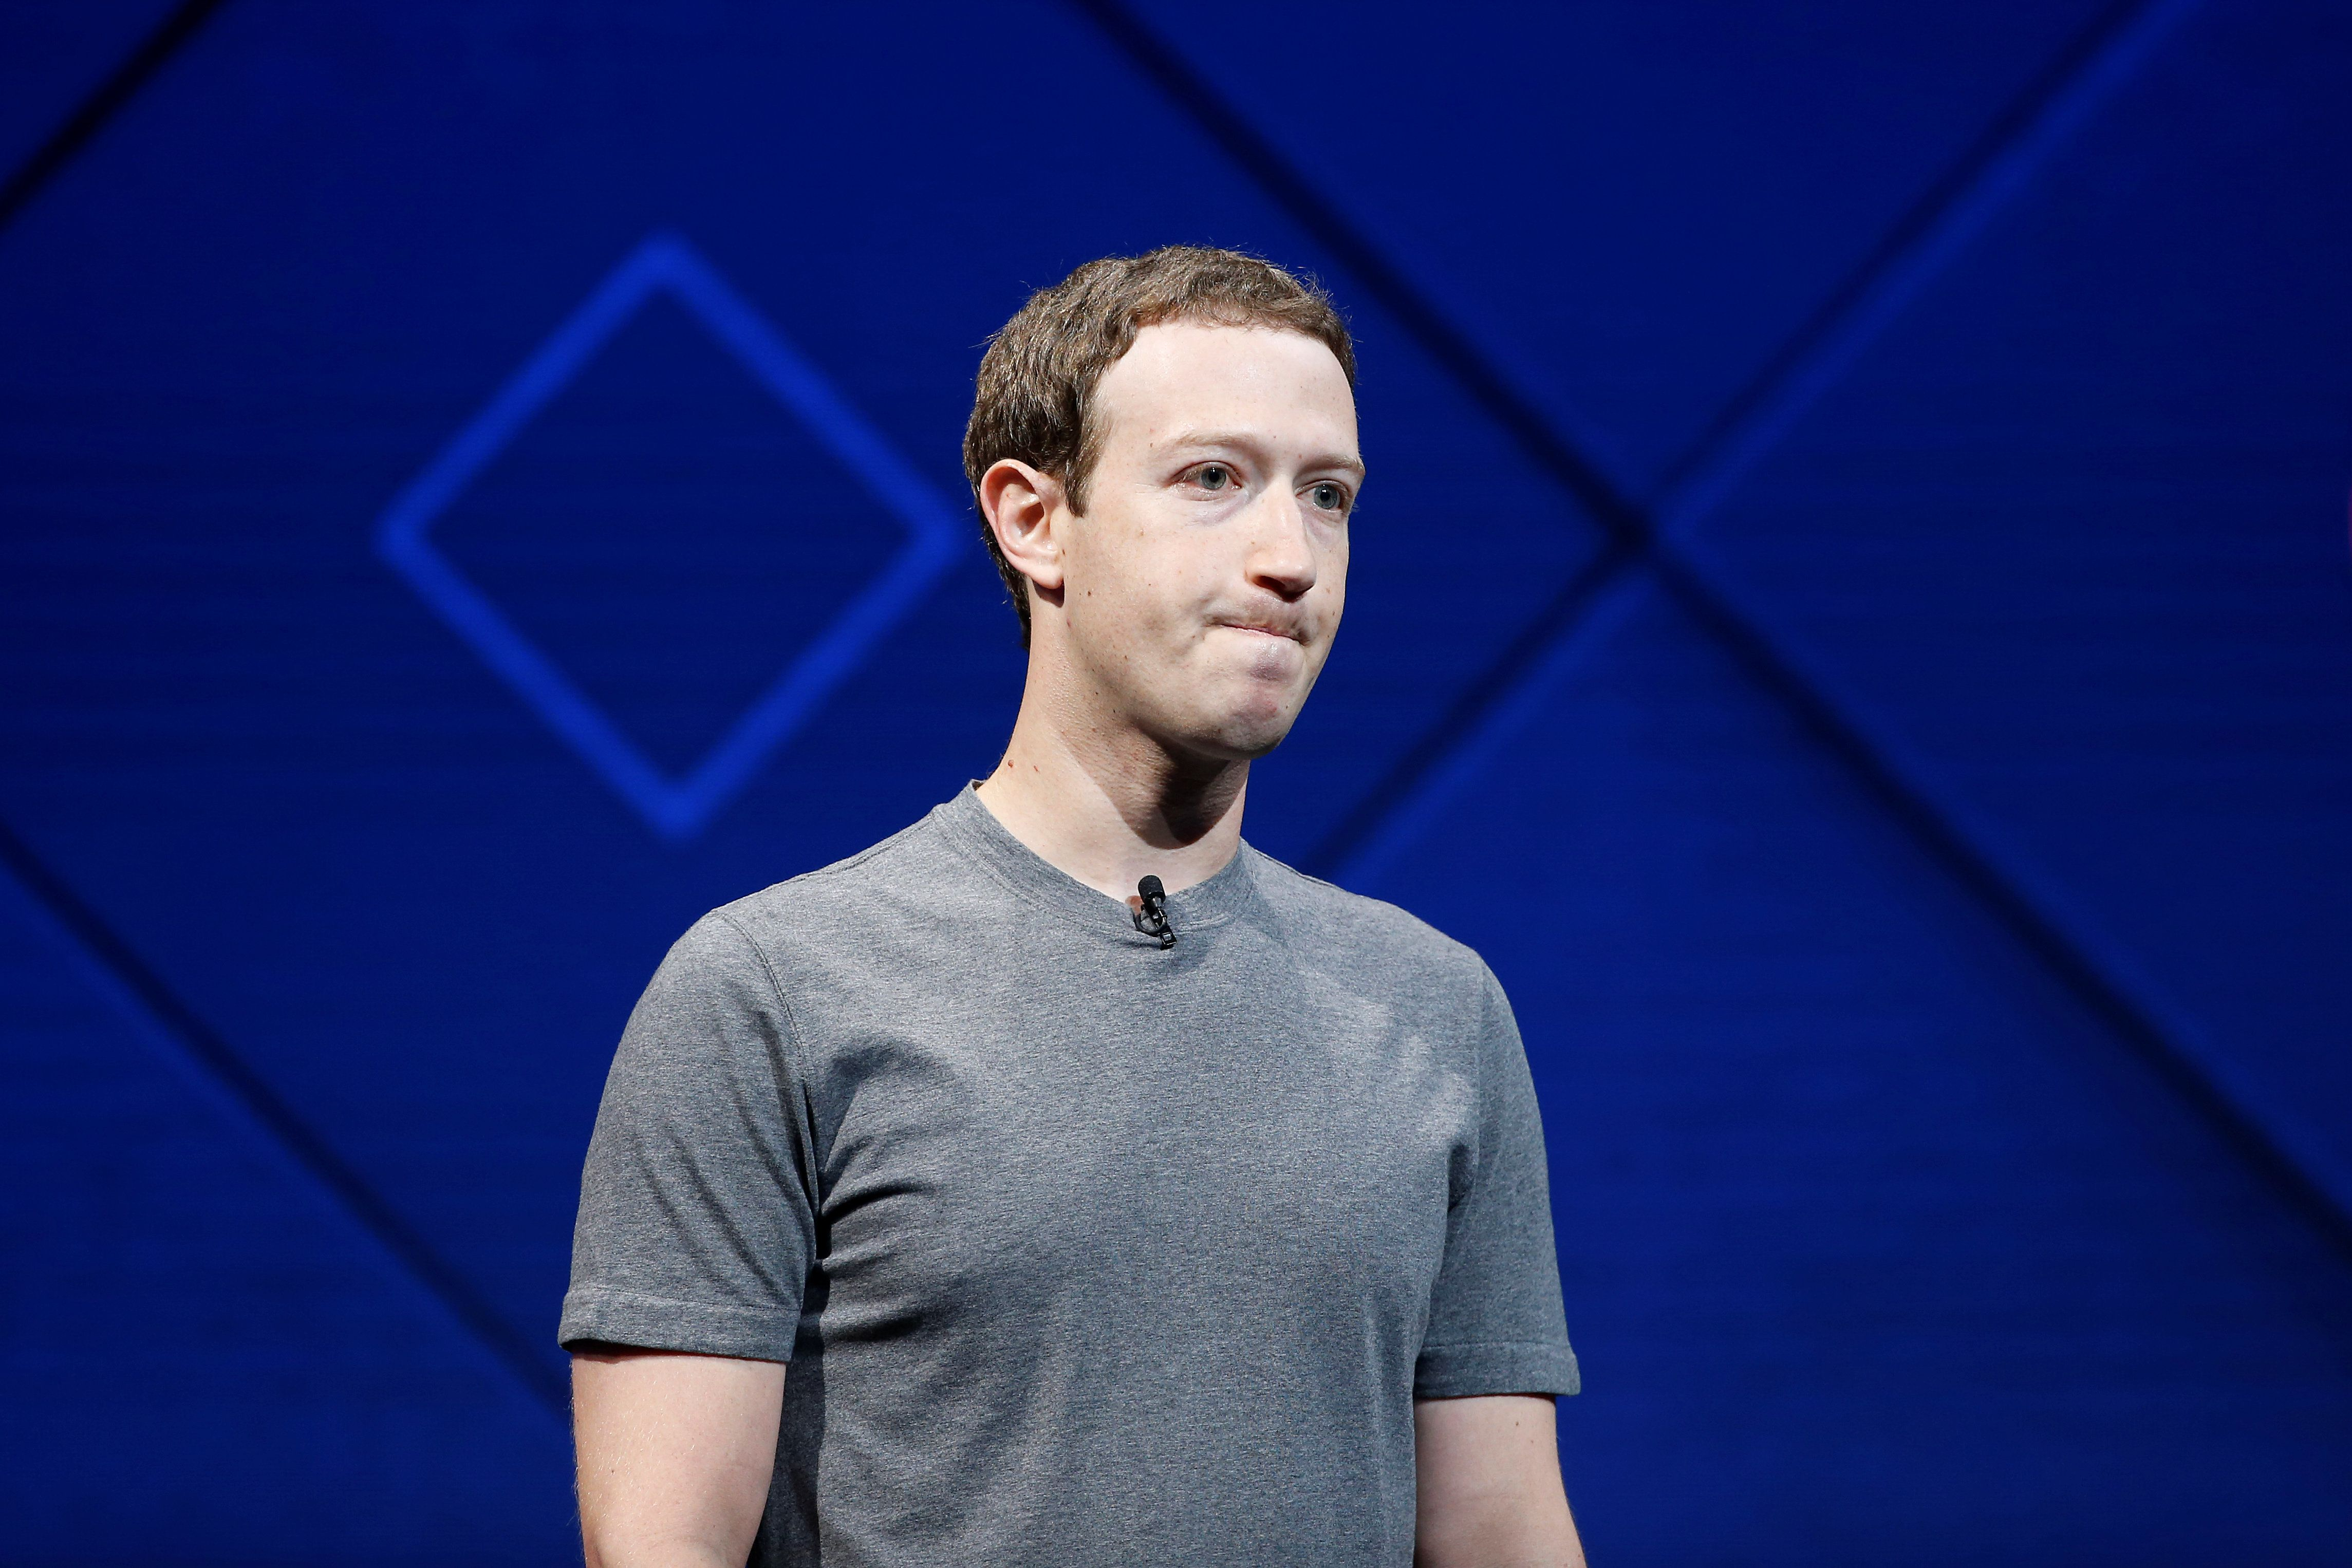 Facebook CEO Mark Zuckerberg once said concerns about Facebook's role in the 2016 election were